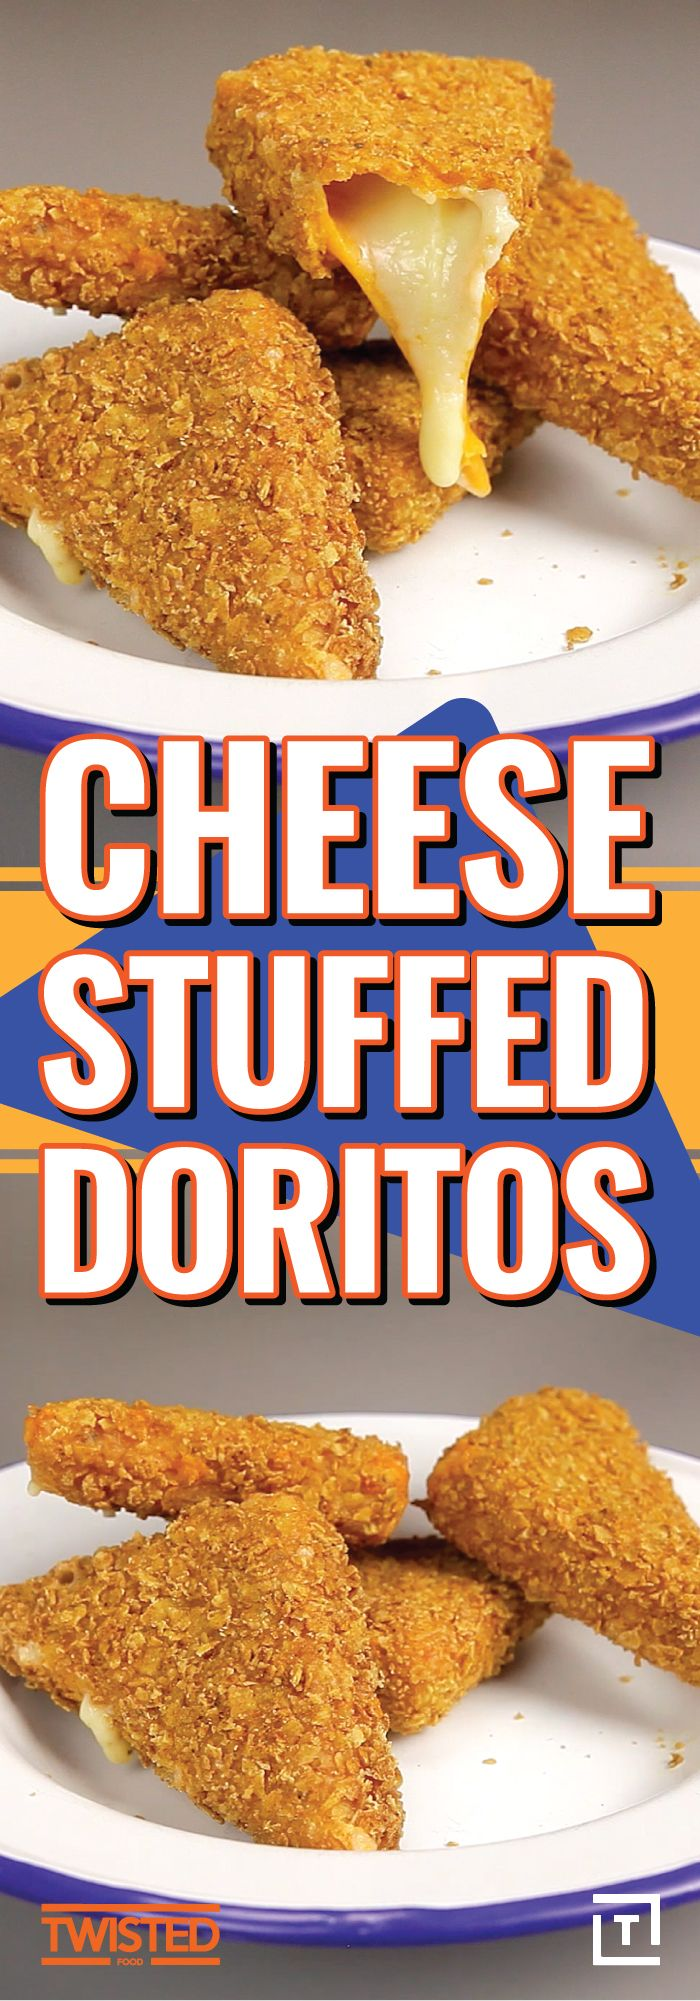 Upgrade your snacking the Twisted way, by coating 2 types of cheddar in your favorite flavor of crushed Doritos and frying them up to crispy, crunchy, cheesy perfection. Dip 'em in ketchup and hot sauce or have at 'em solo, either way you can't go wrong.